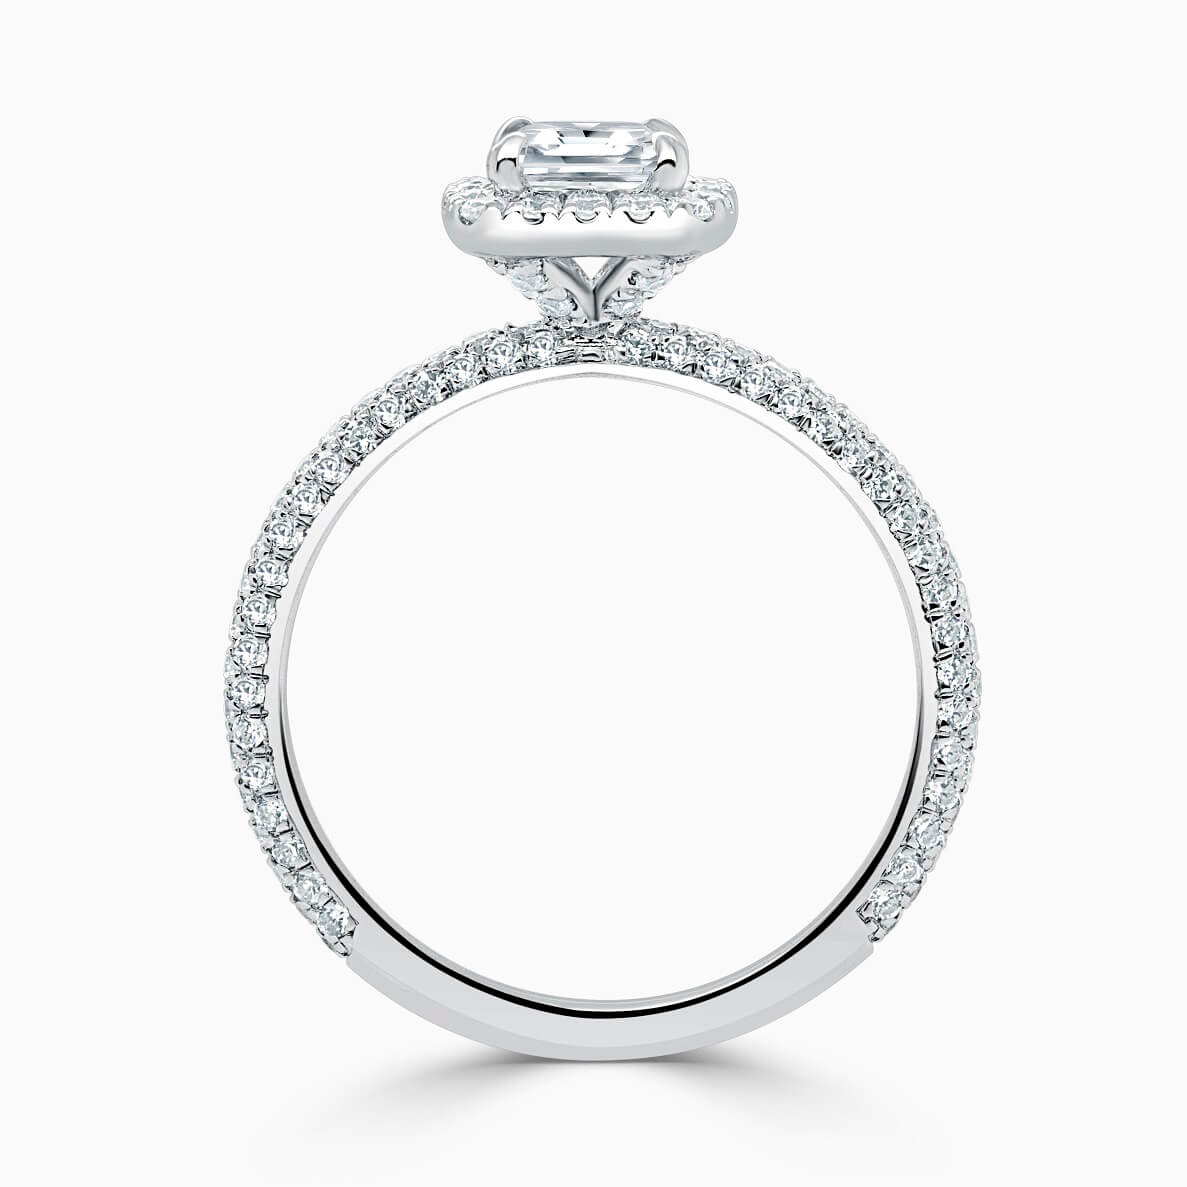 18ct White Gold Princess Cut Halo With Micro Pave Engagement Ring